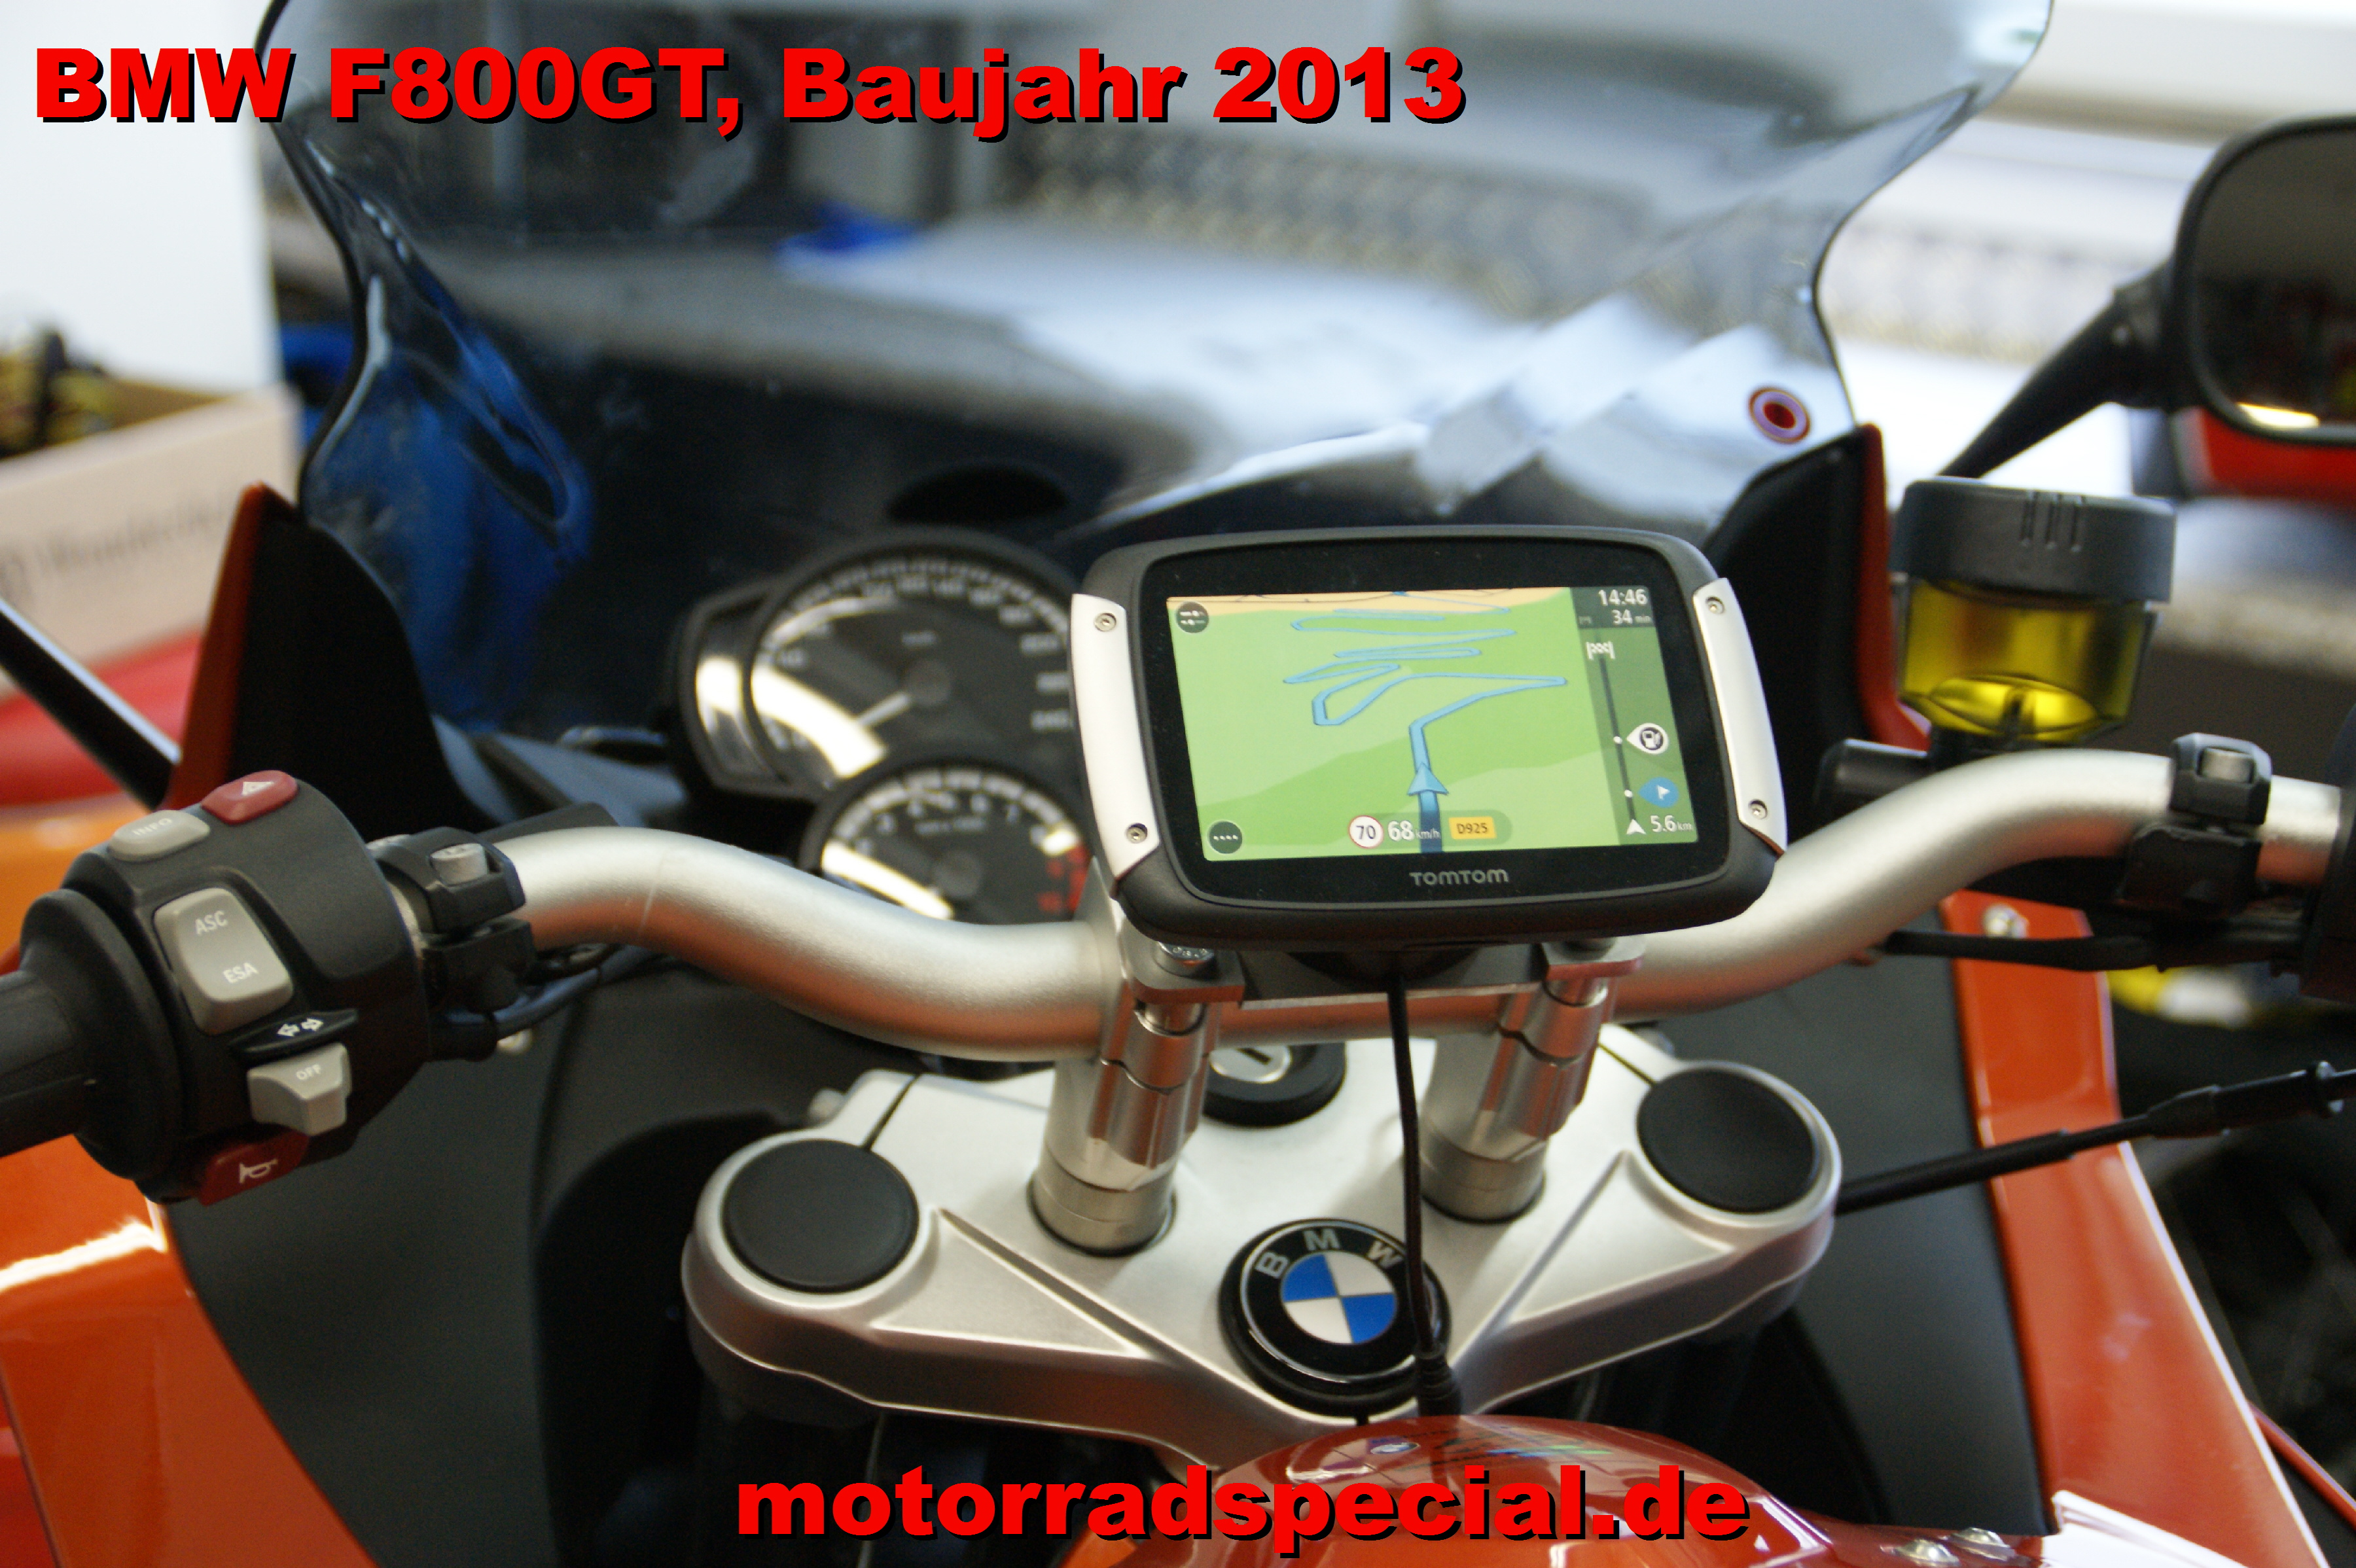 navigationshalterung f r die bmw f800gt tomtom rider 400. Black Bedroom Furniture Sets. Home Design Ideas